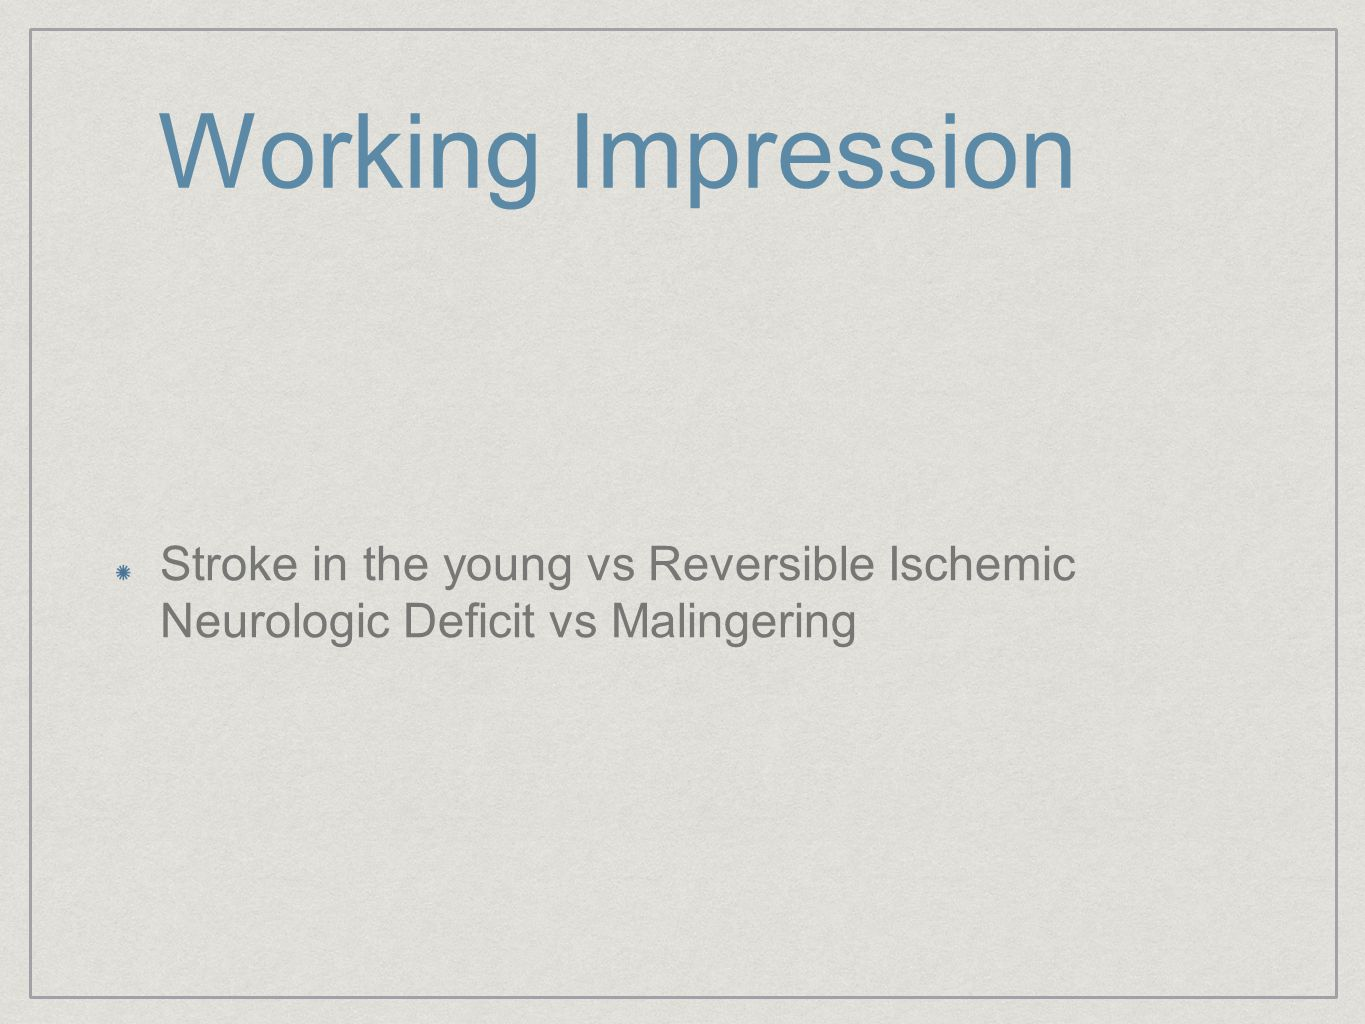 Working Impression Stroke in the young vs Reversible Ischemic Neurologic Deficit vs Malingering